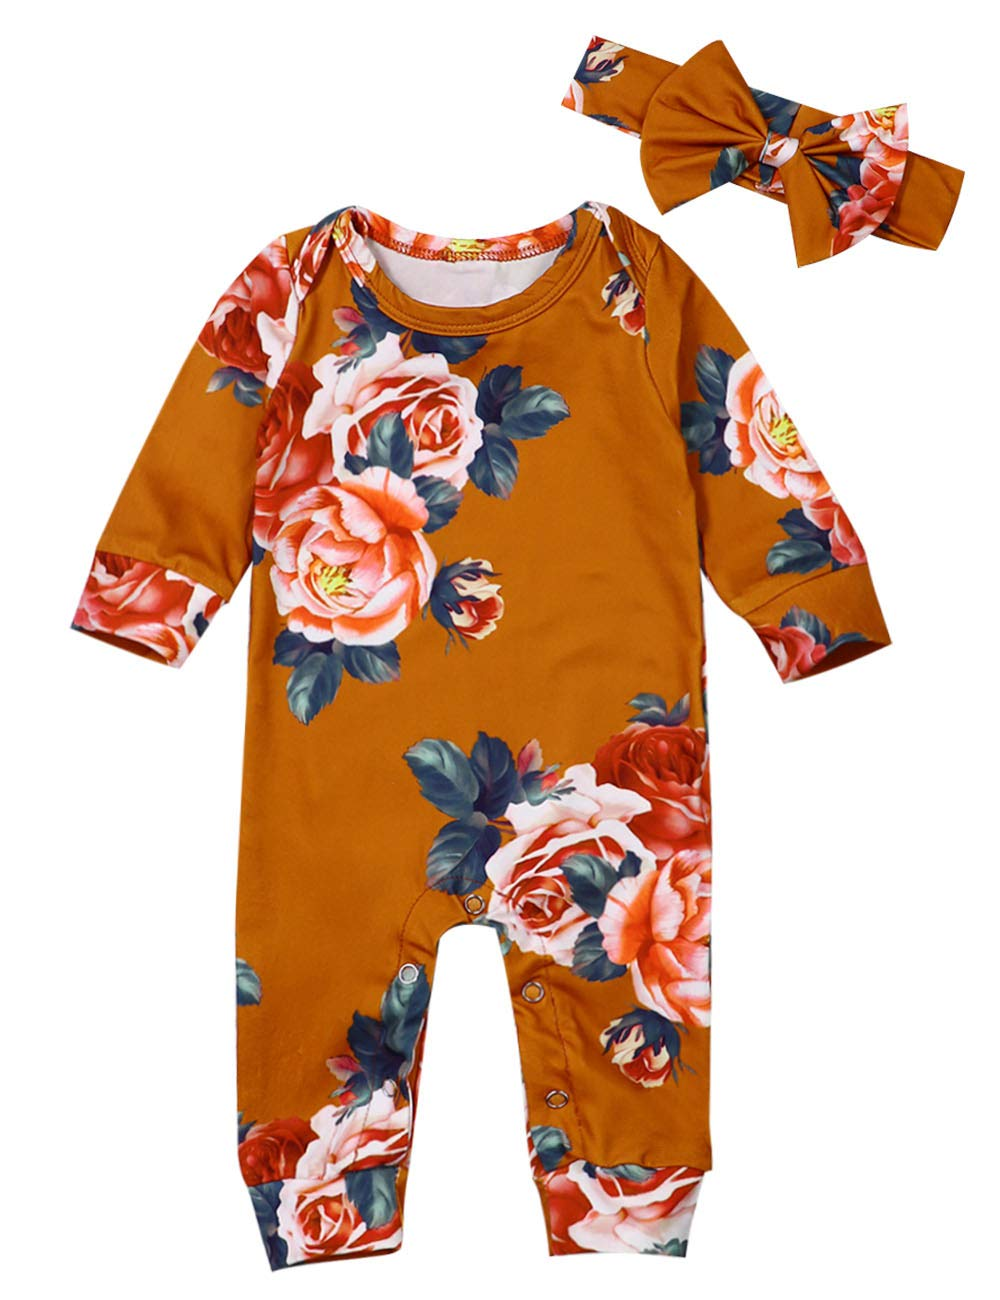 Newborn Baby Girl Romper Ruffle Floral Jumpsuit Long Sleeve Bodysuit Infant Outfit